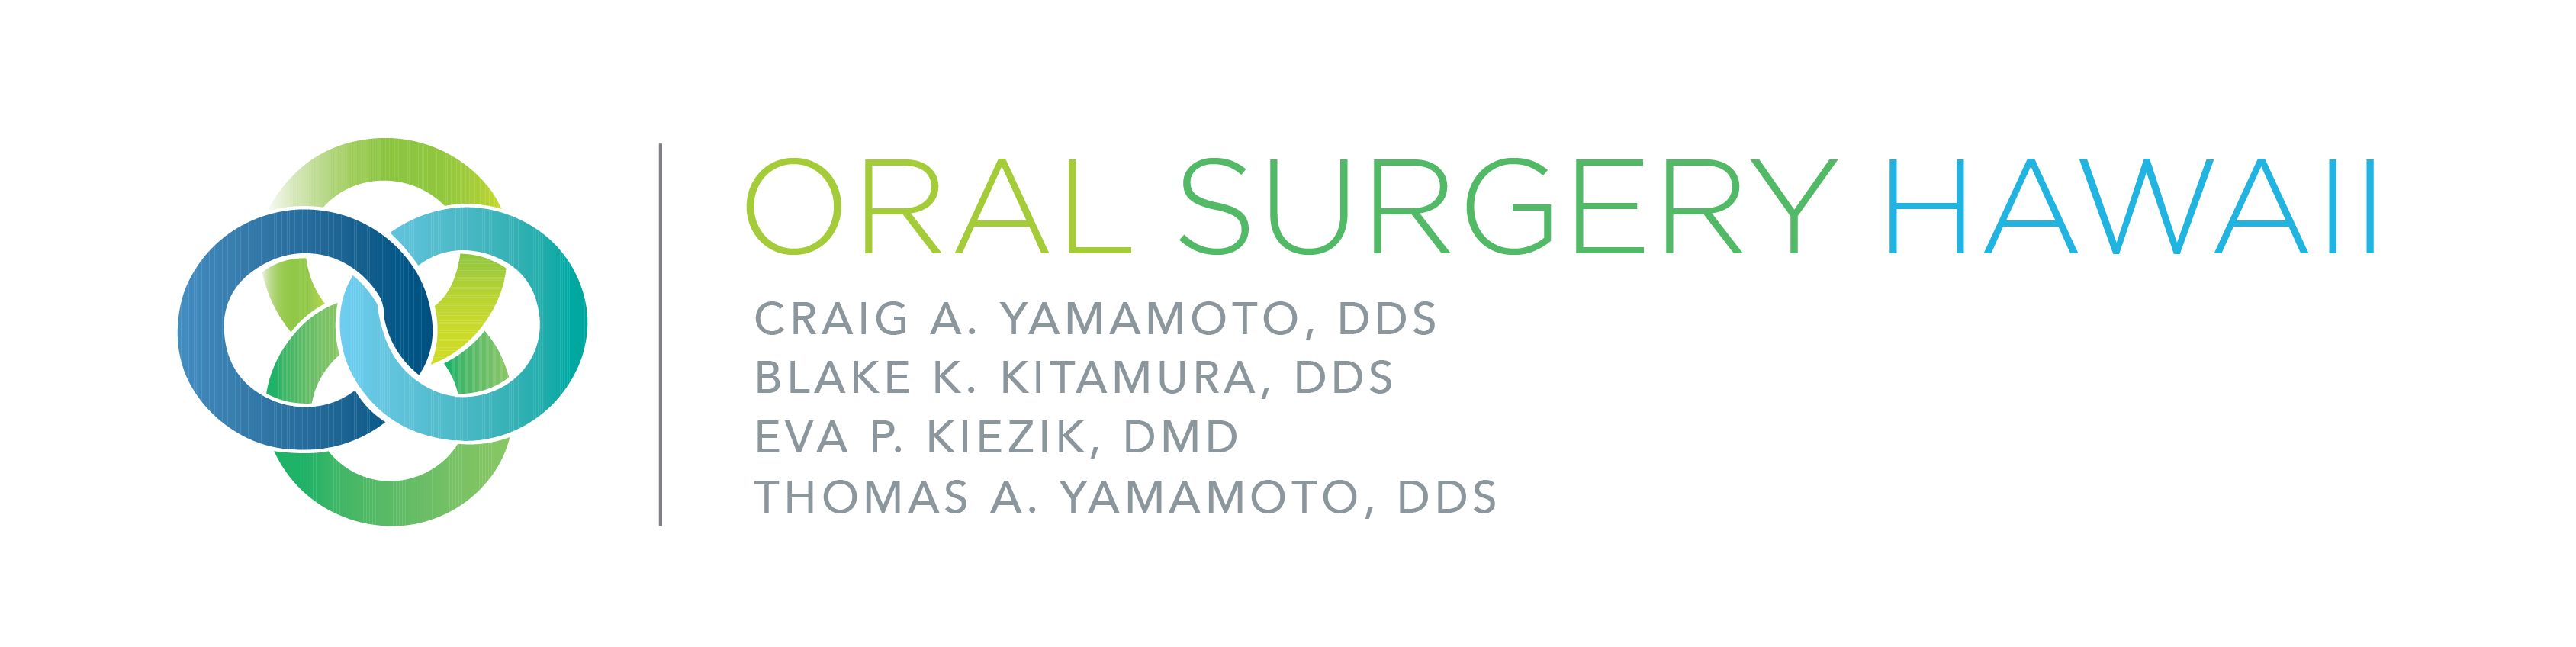 Oral Surgery Hawaii